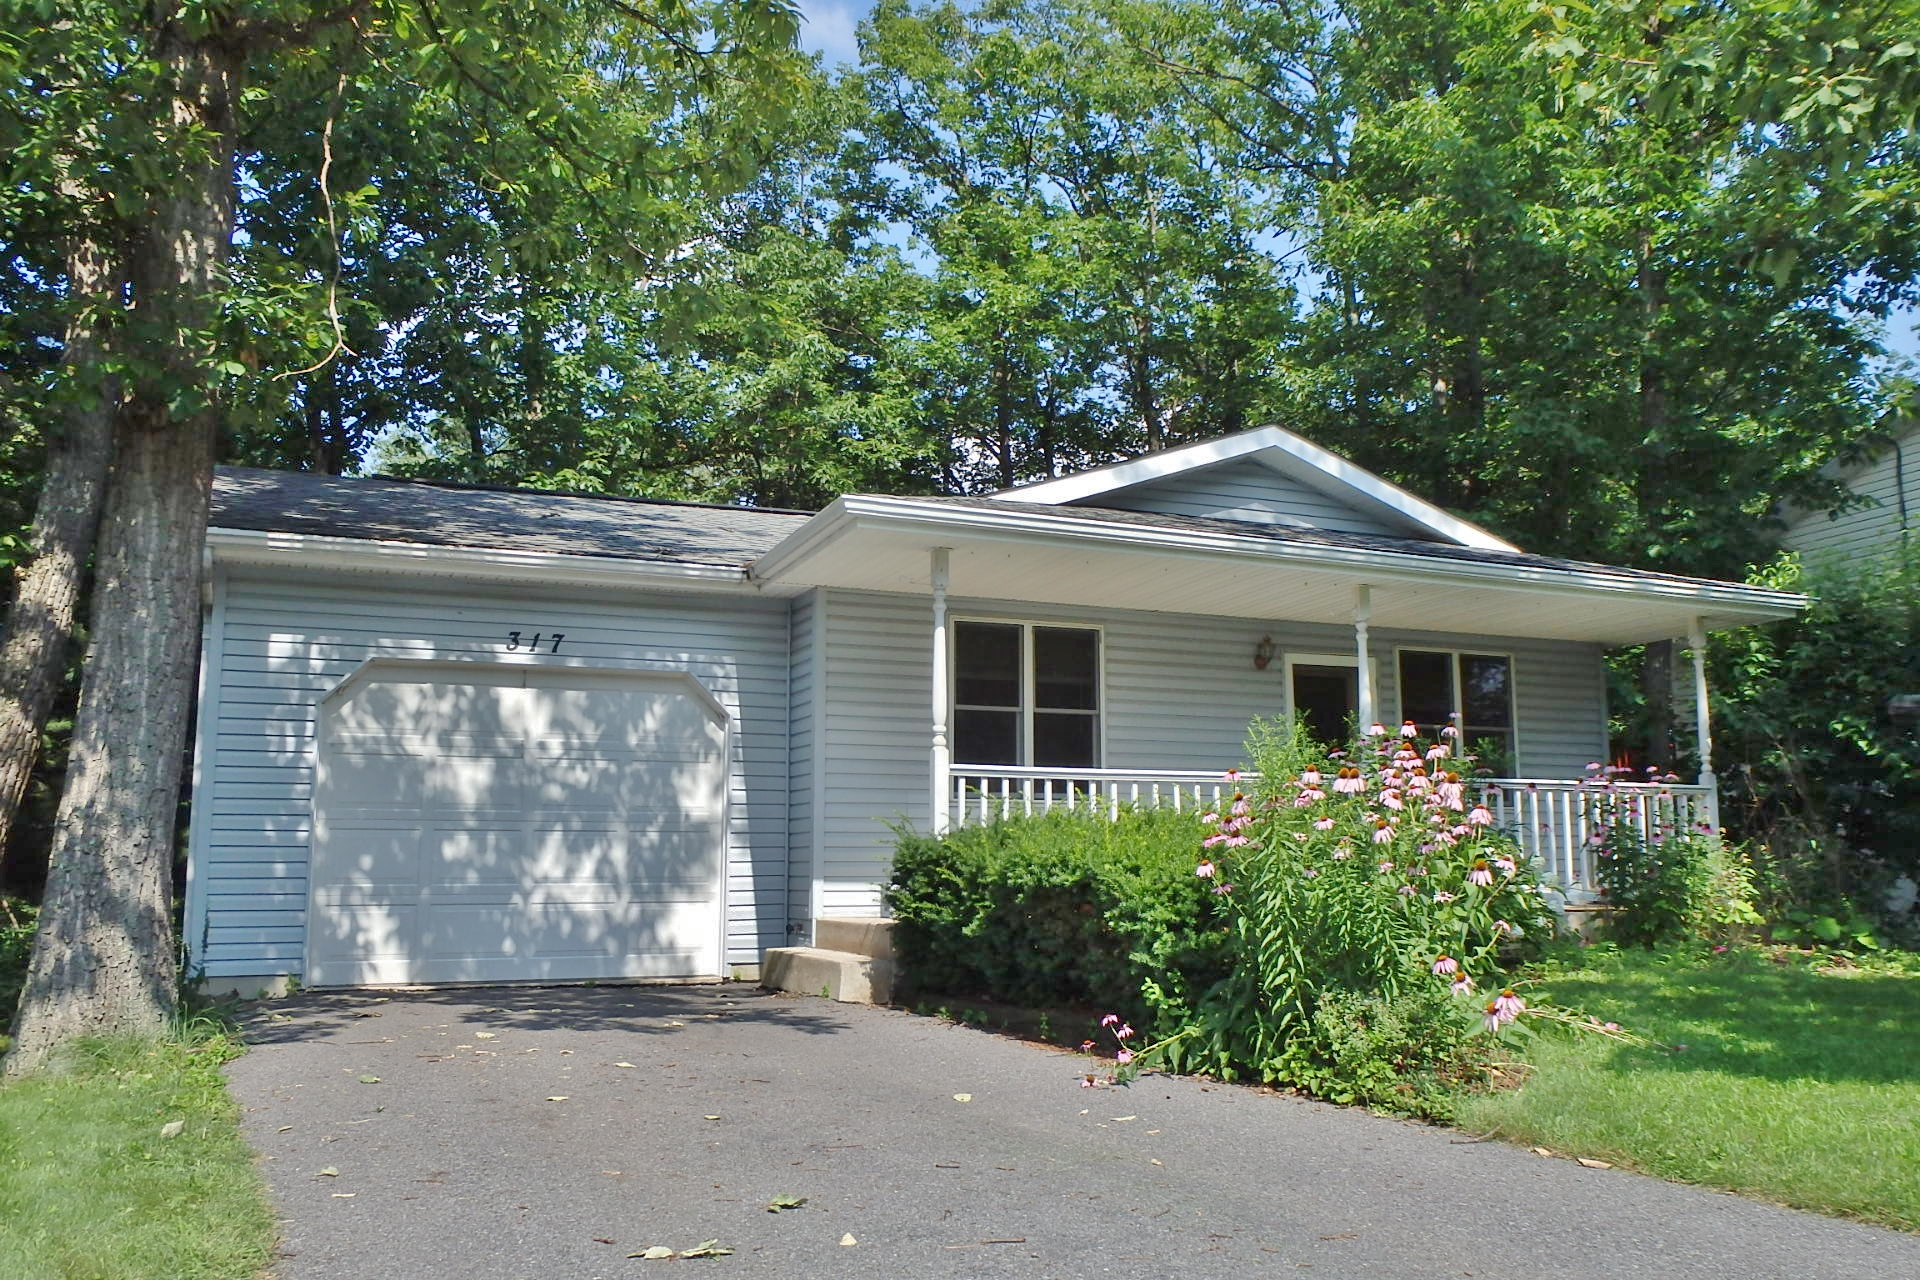 317 Ghaner Drive is a 3-bedroom house for rent in State College, PA. Professionally managed by Park Forest Enterprises, Inc.